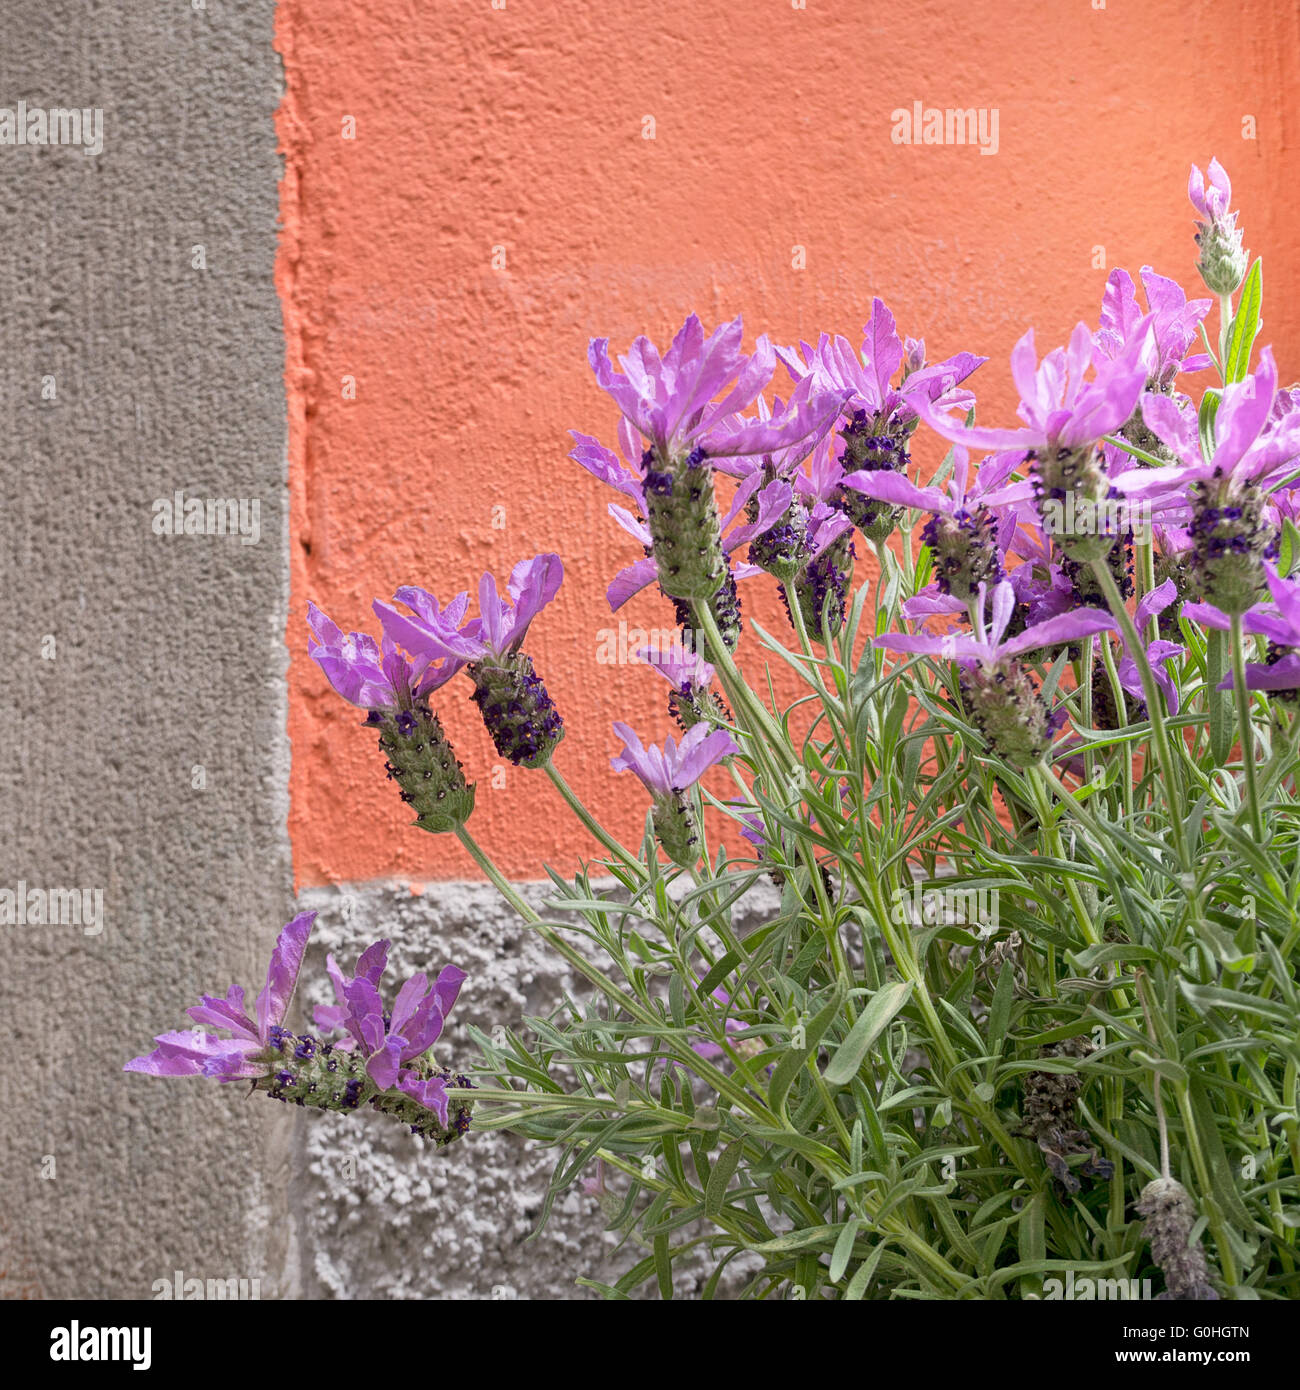 purple and orange planting stockfotos purple and orange planting bilder alamy. Black Bedroom Furniture Sets. Home Design Ideas